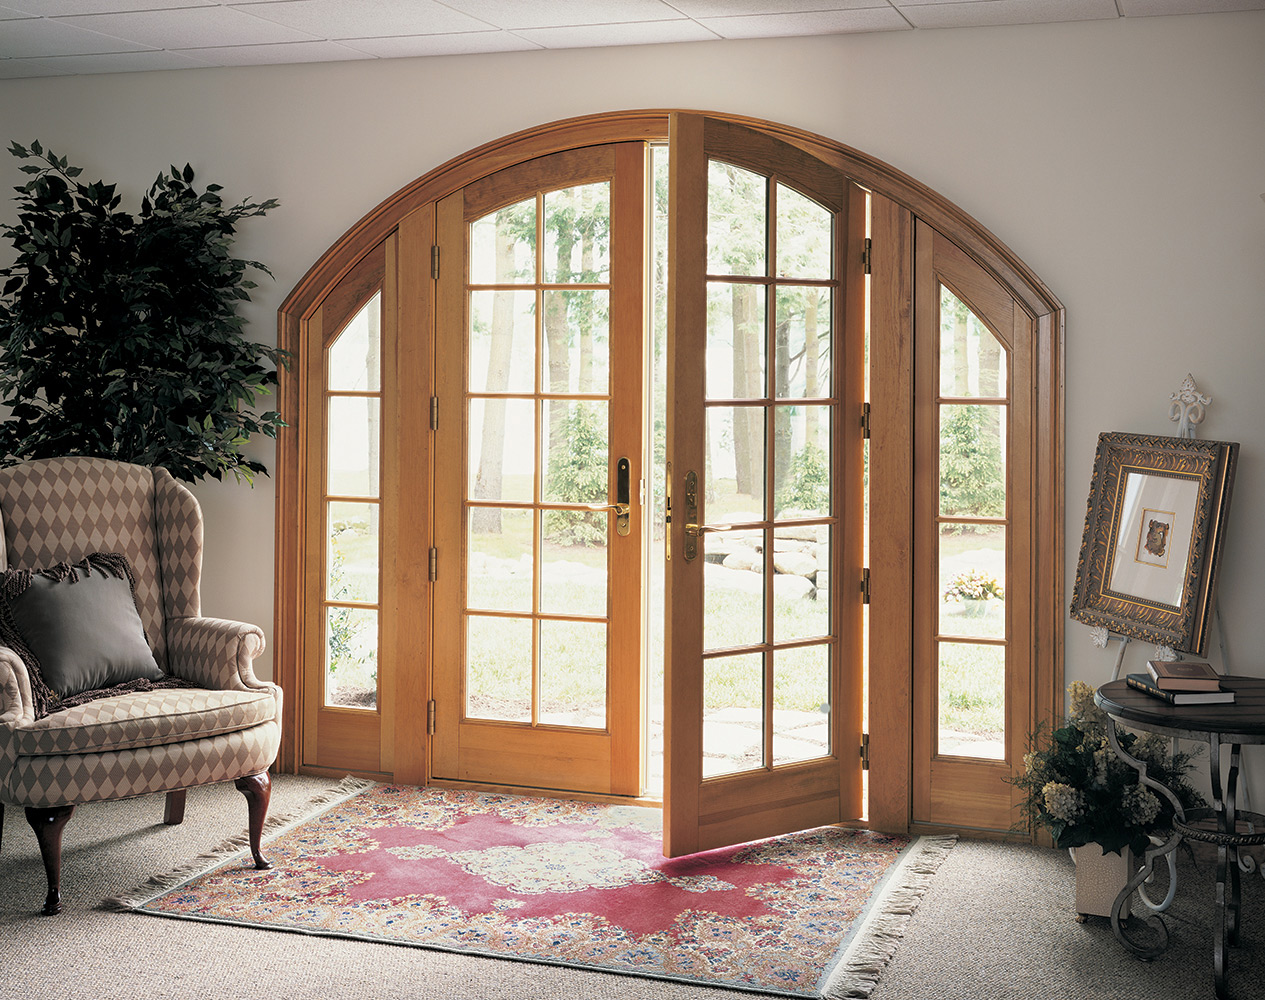 Replacement Patio Doors Wisconsin | HomeTowne Windows & Doors ...